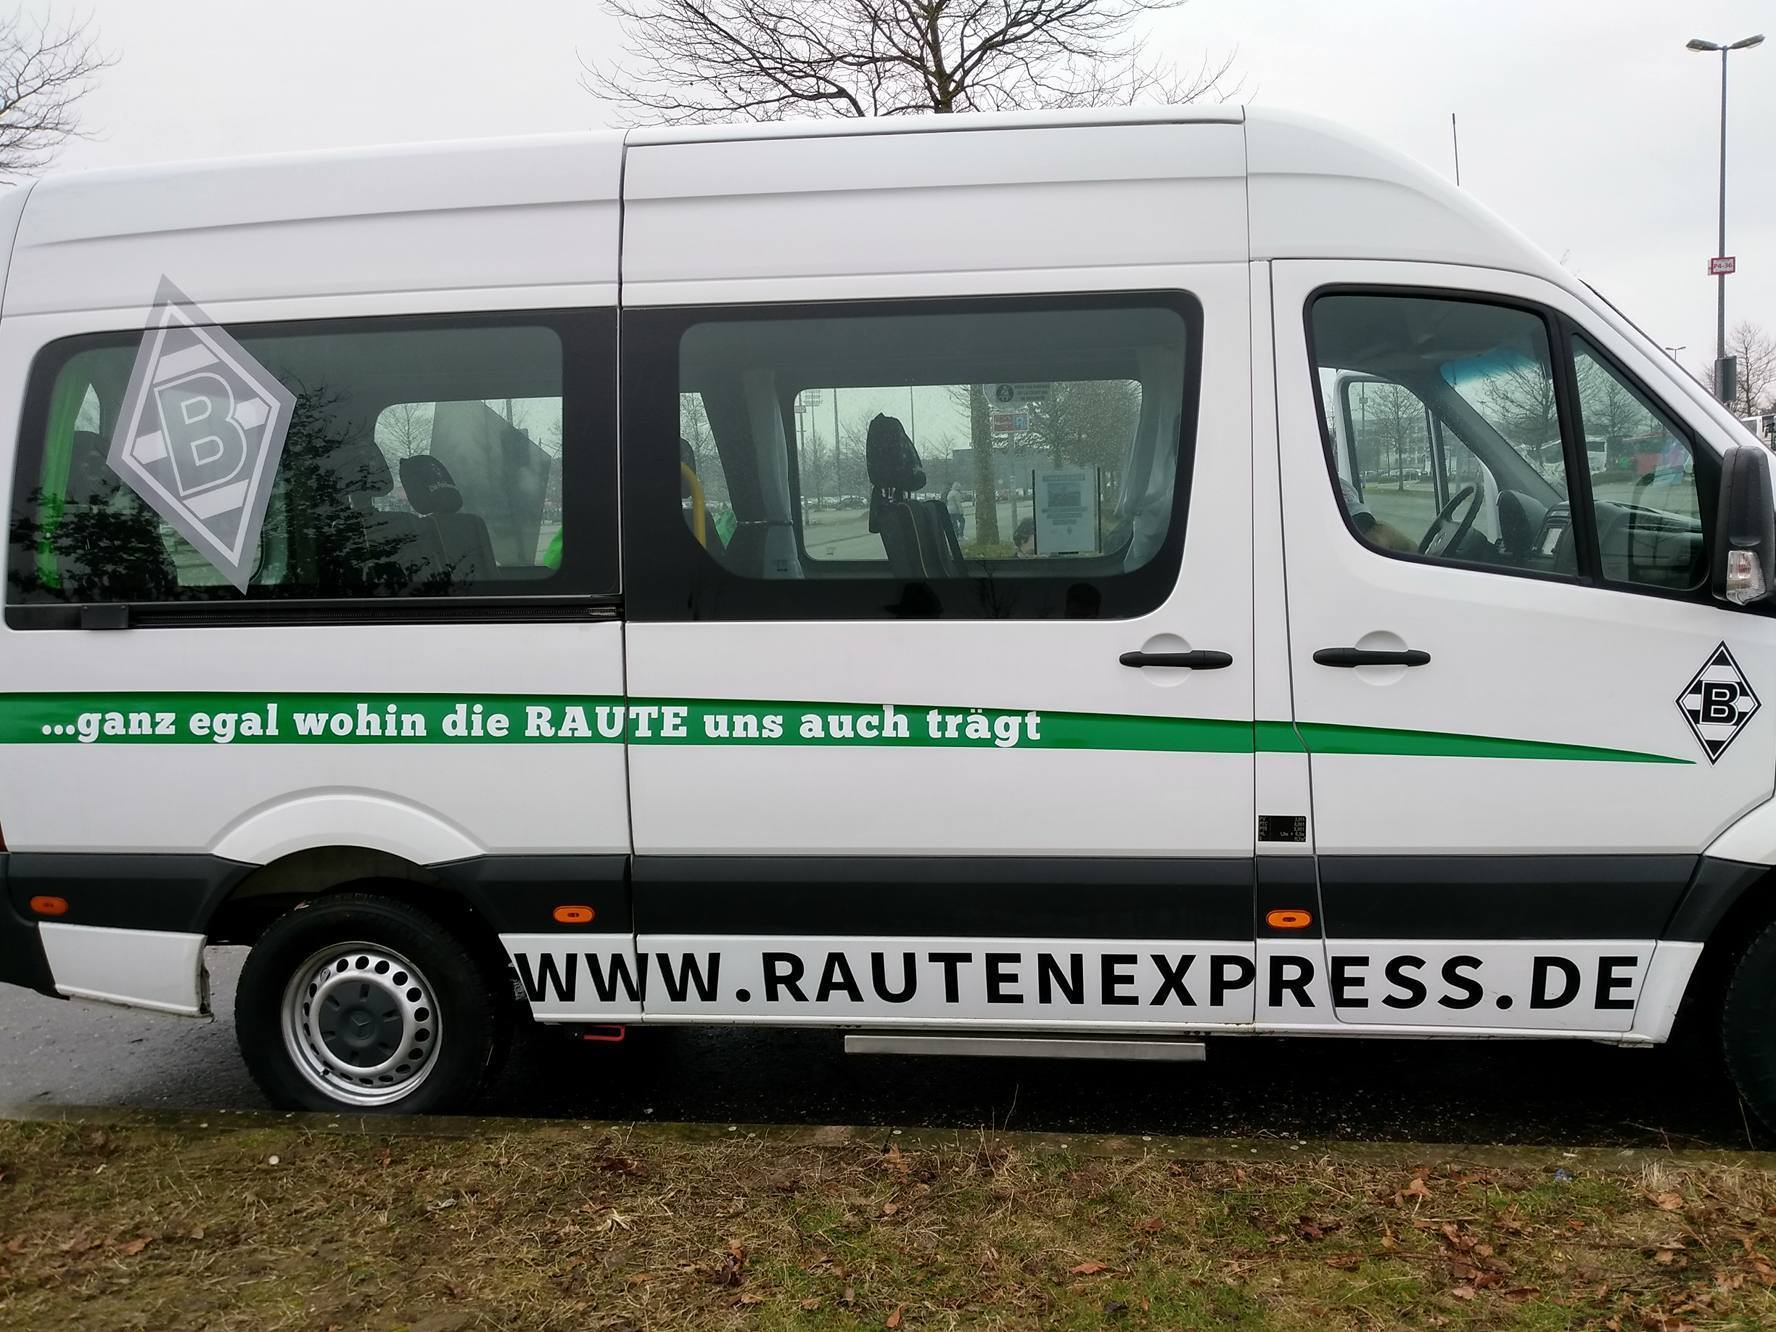 Rautenexpress Bus